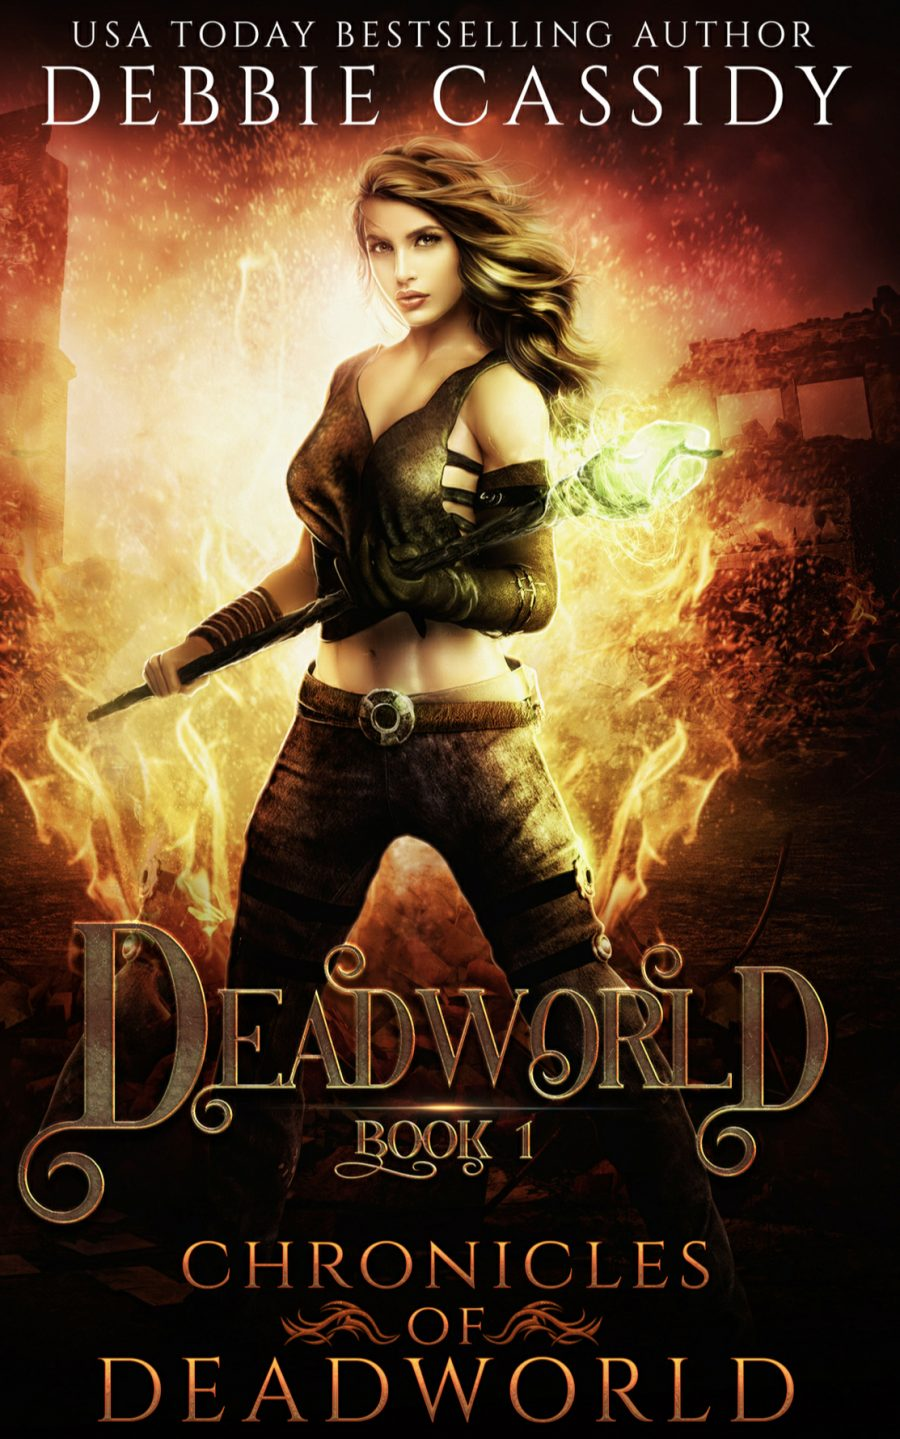 Deadworld: Chronicles of Deadworld - Book 1 by Debbie Cassidy - A Book Review #BookReview #PNR #Slowburn #RH #Dystopian #SeriesComplete #KindleUnlimited #KU #MustRead